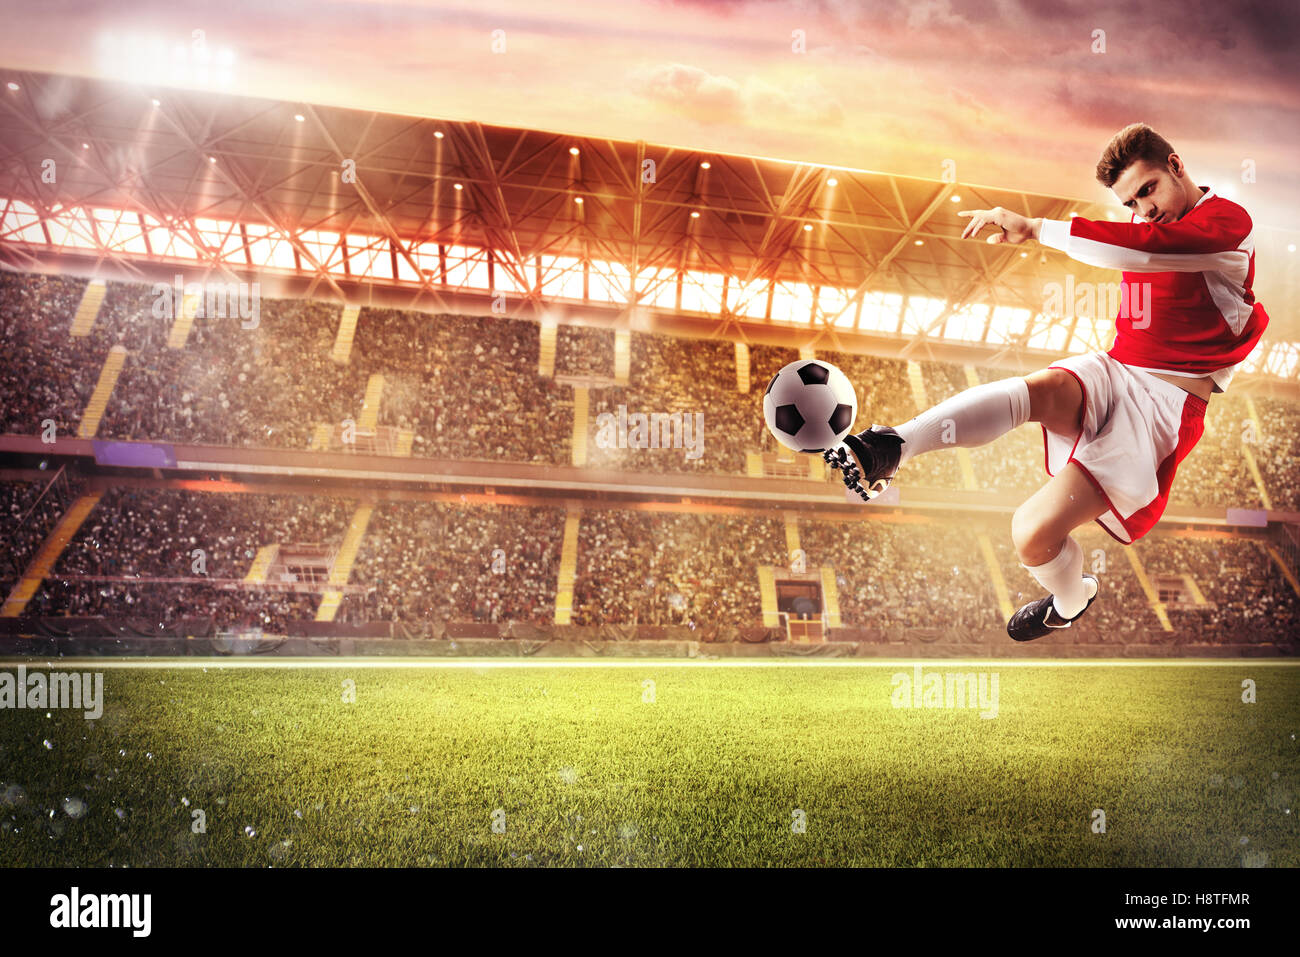 Football game at the stadium - Stock Image